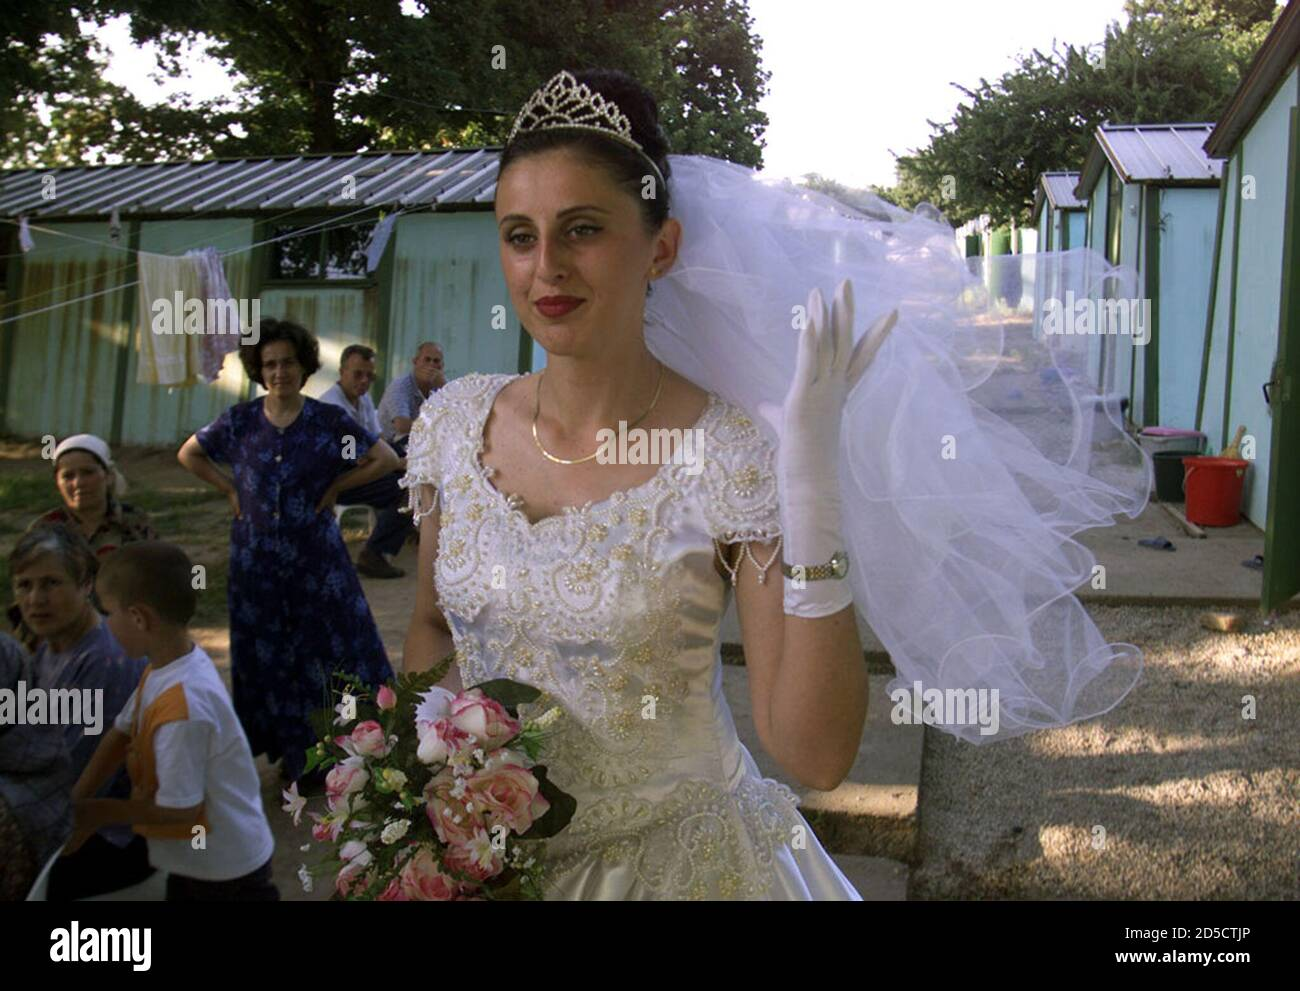 An Albanian Kosovar refugee bride Besa Karabek adjusts her bridal veil as she is admired by neighbouring refugees late June 13 waiting for her wedding among the huts at a refugee camp in western Turkey where nearly 7,600 Kosovar refugees took shelter since they fled Kosovo. Twenty-year-old Kosovar refugee Besa Karabek is the first bride in this refugee camp near the western Turkish city of Kirklareli, 200 kms from Istanbul.  FS/WS Stock Photo